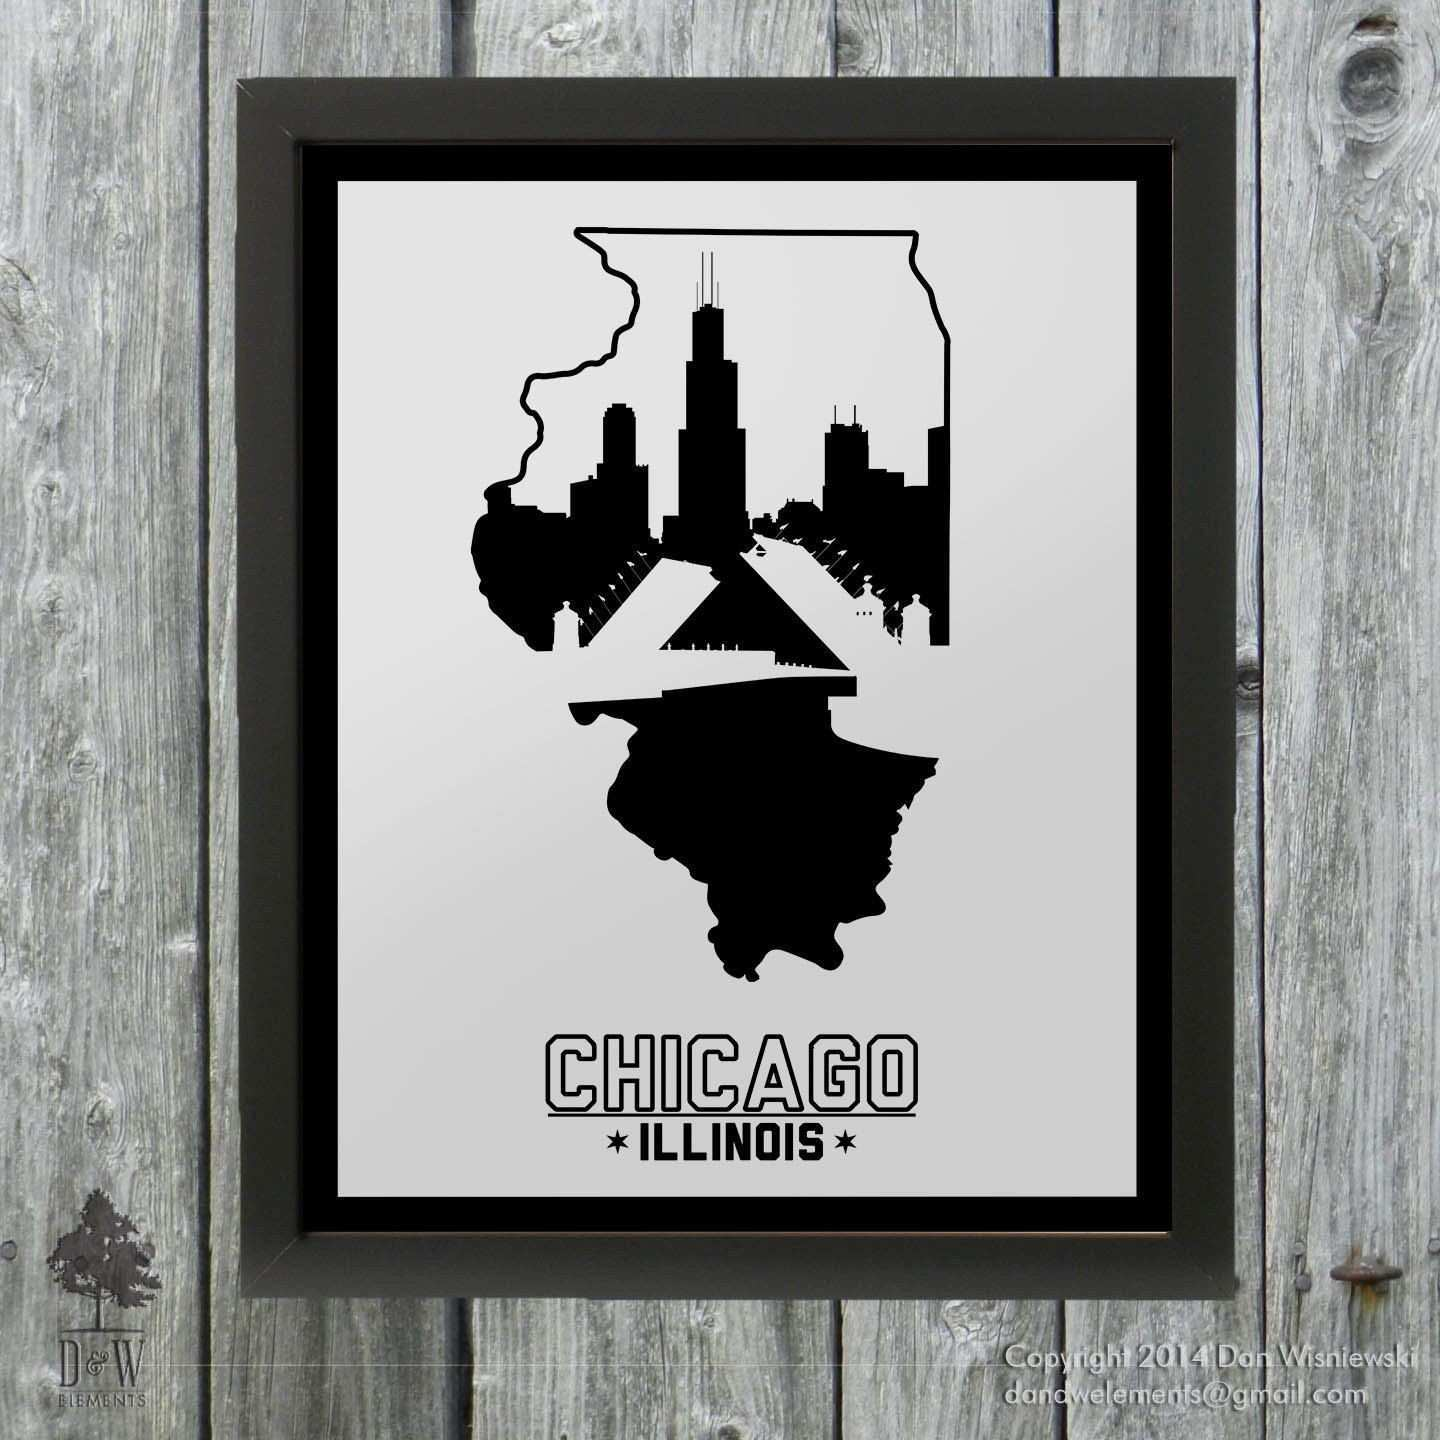 Chigago Illinois Skyline Poster Print Wall Art Choose a Size